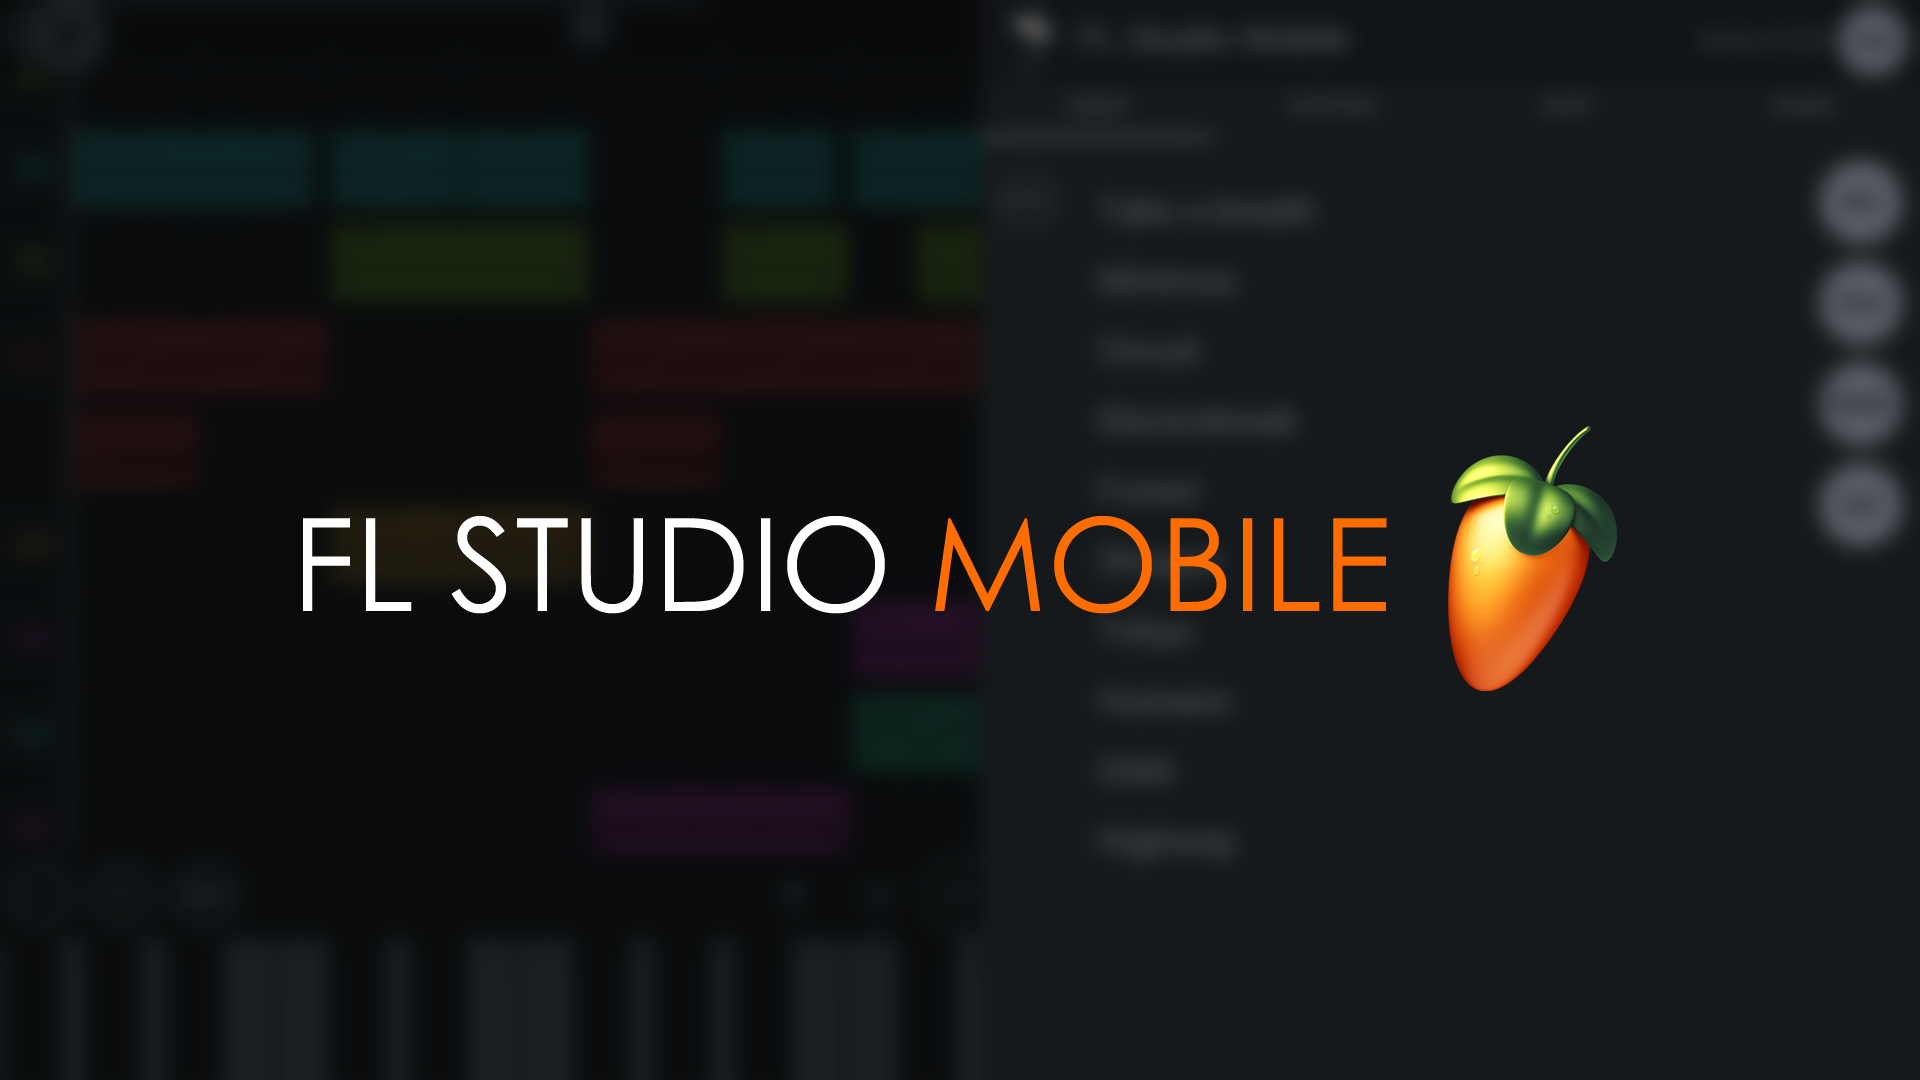 Press kit for Studio mobili